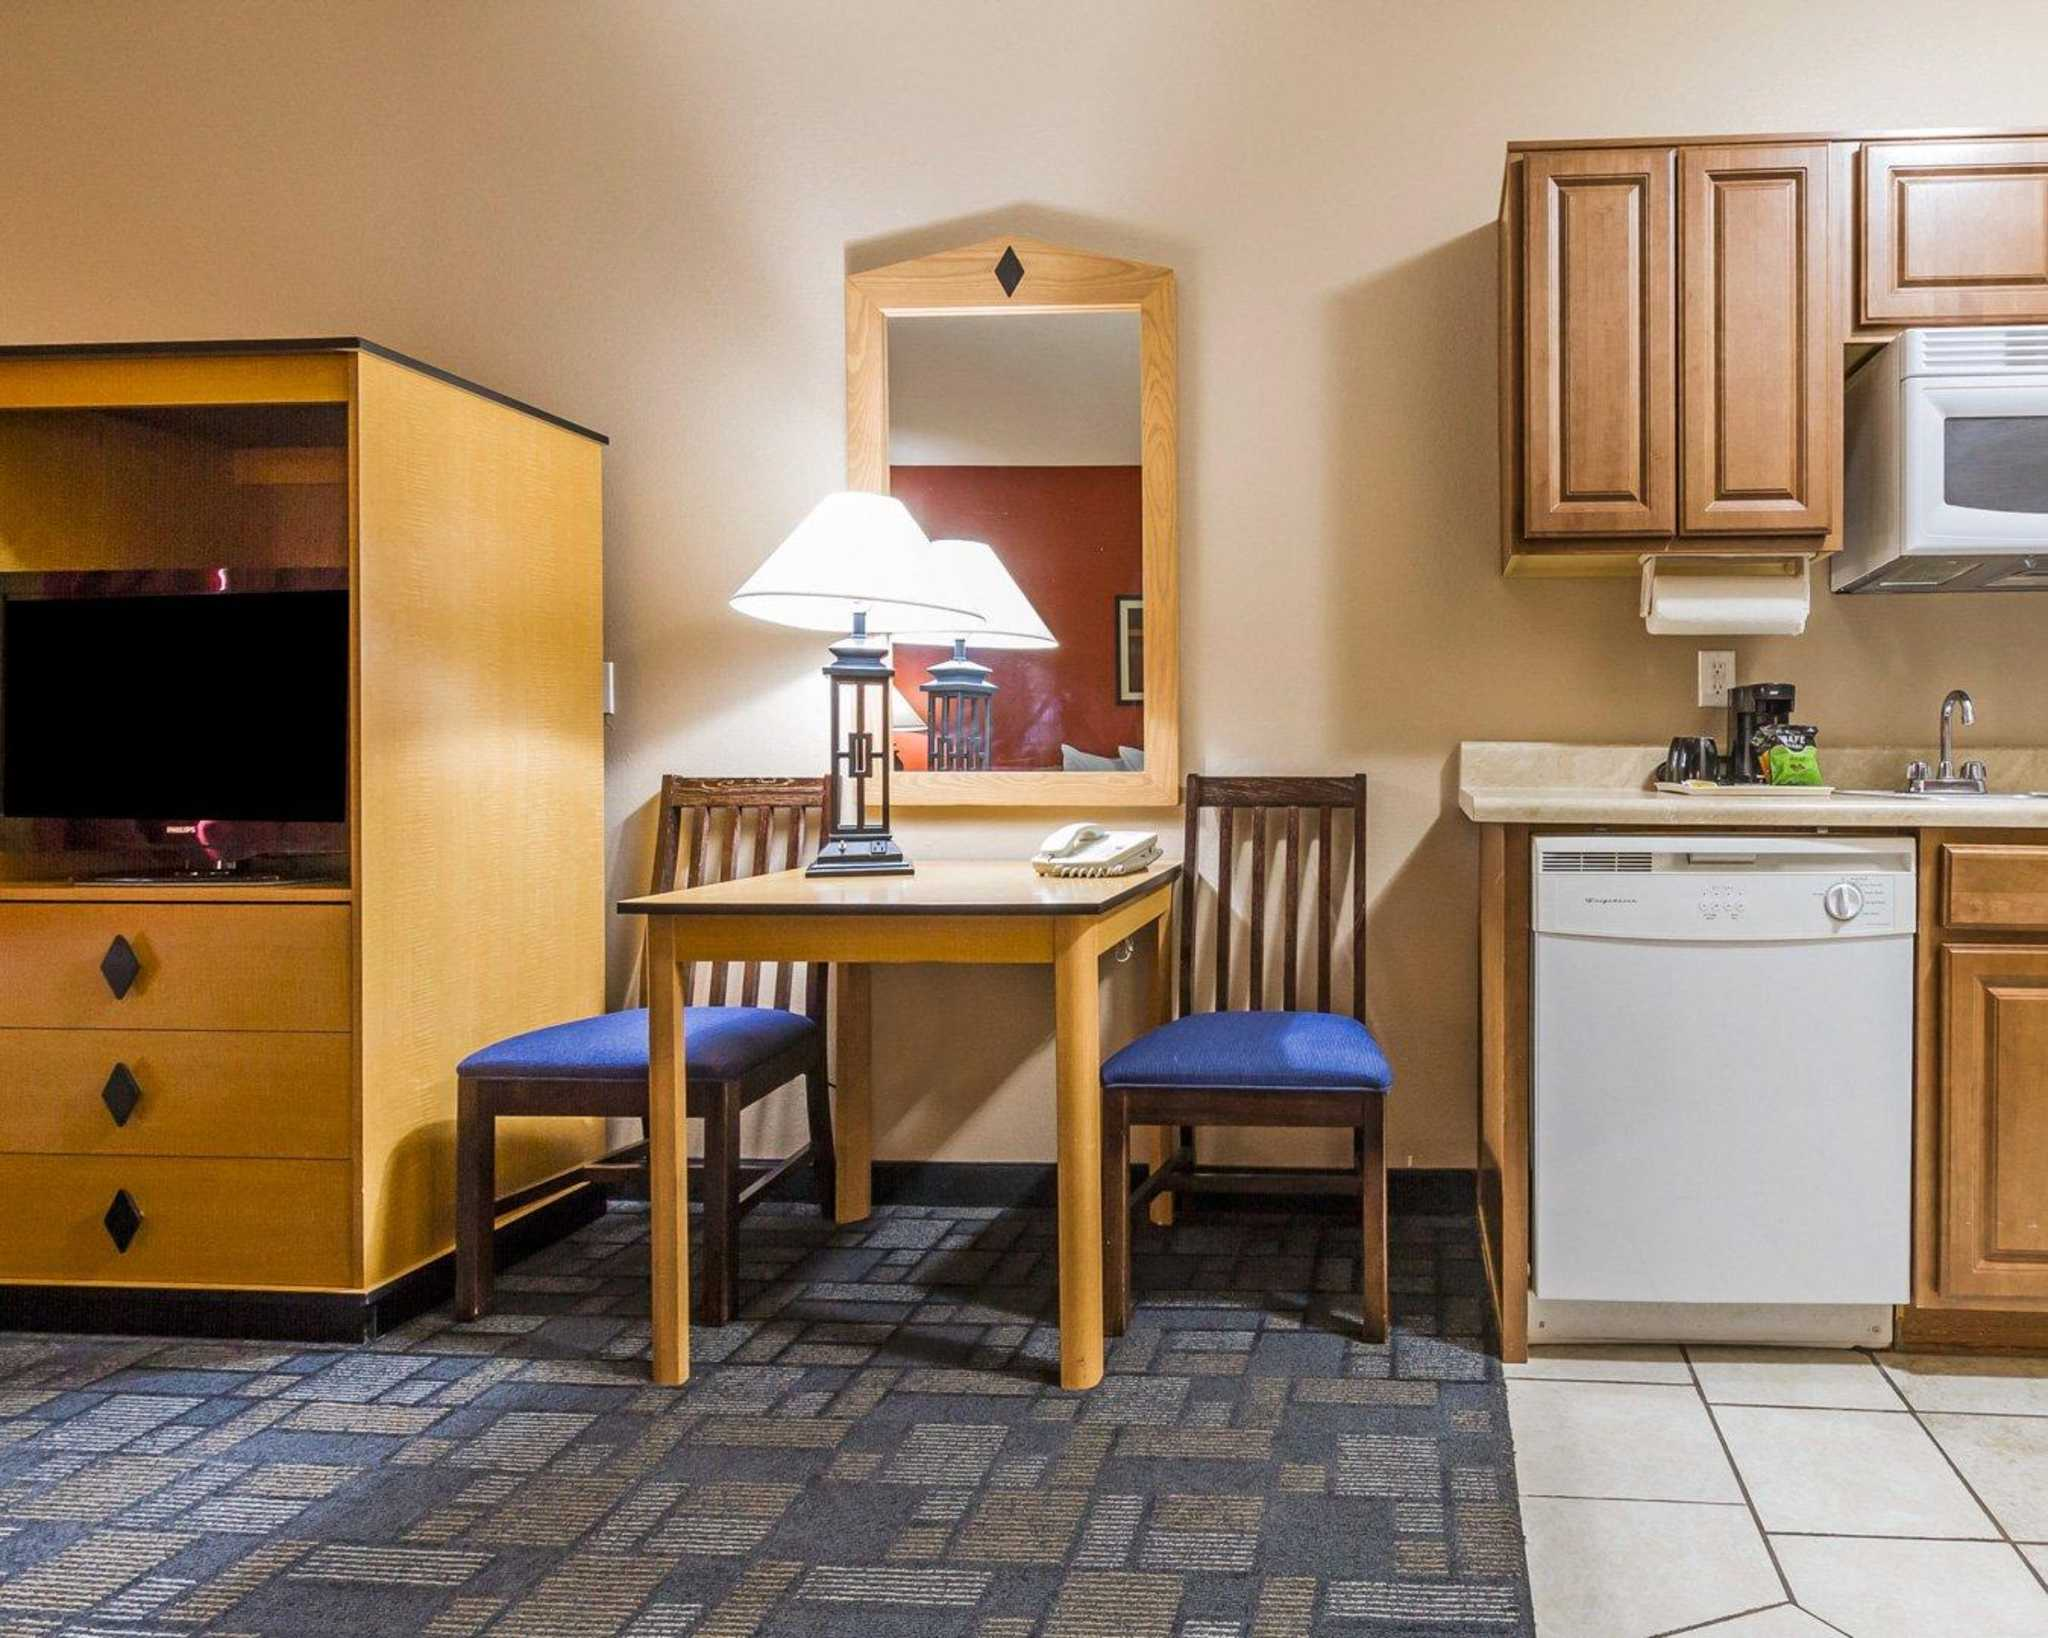 MainStay Suites image 4